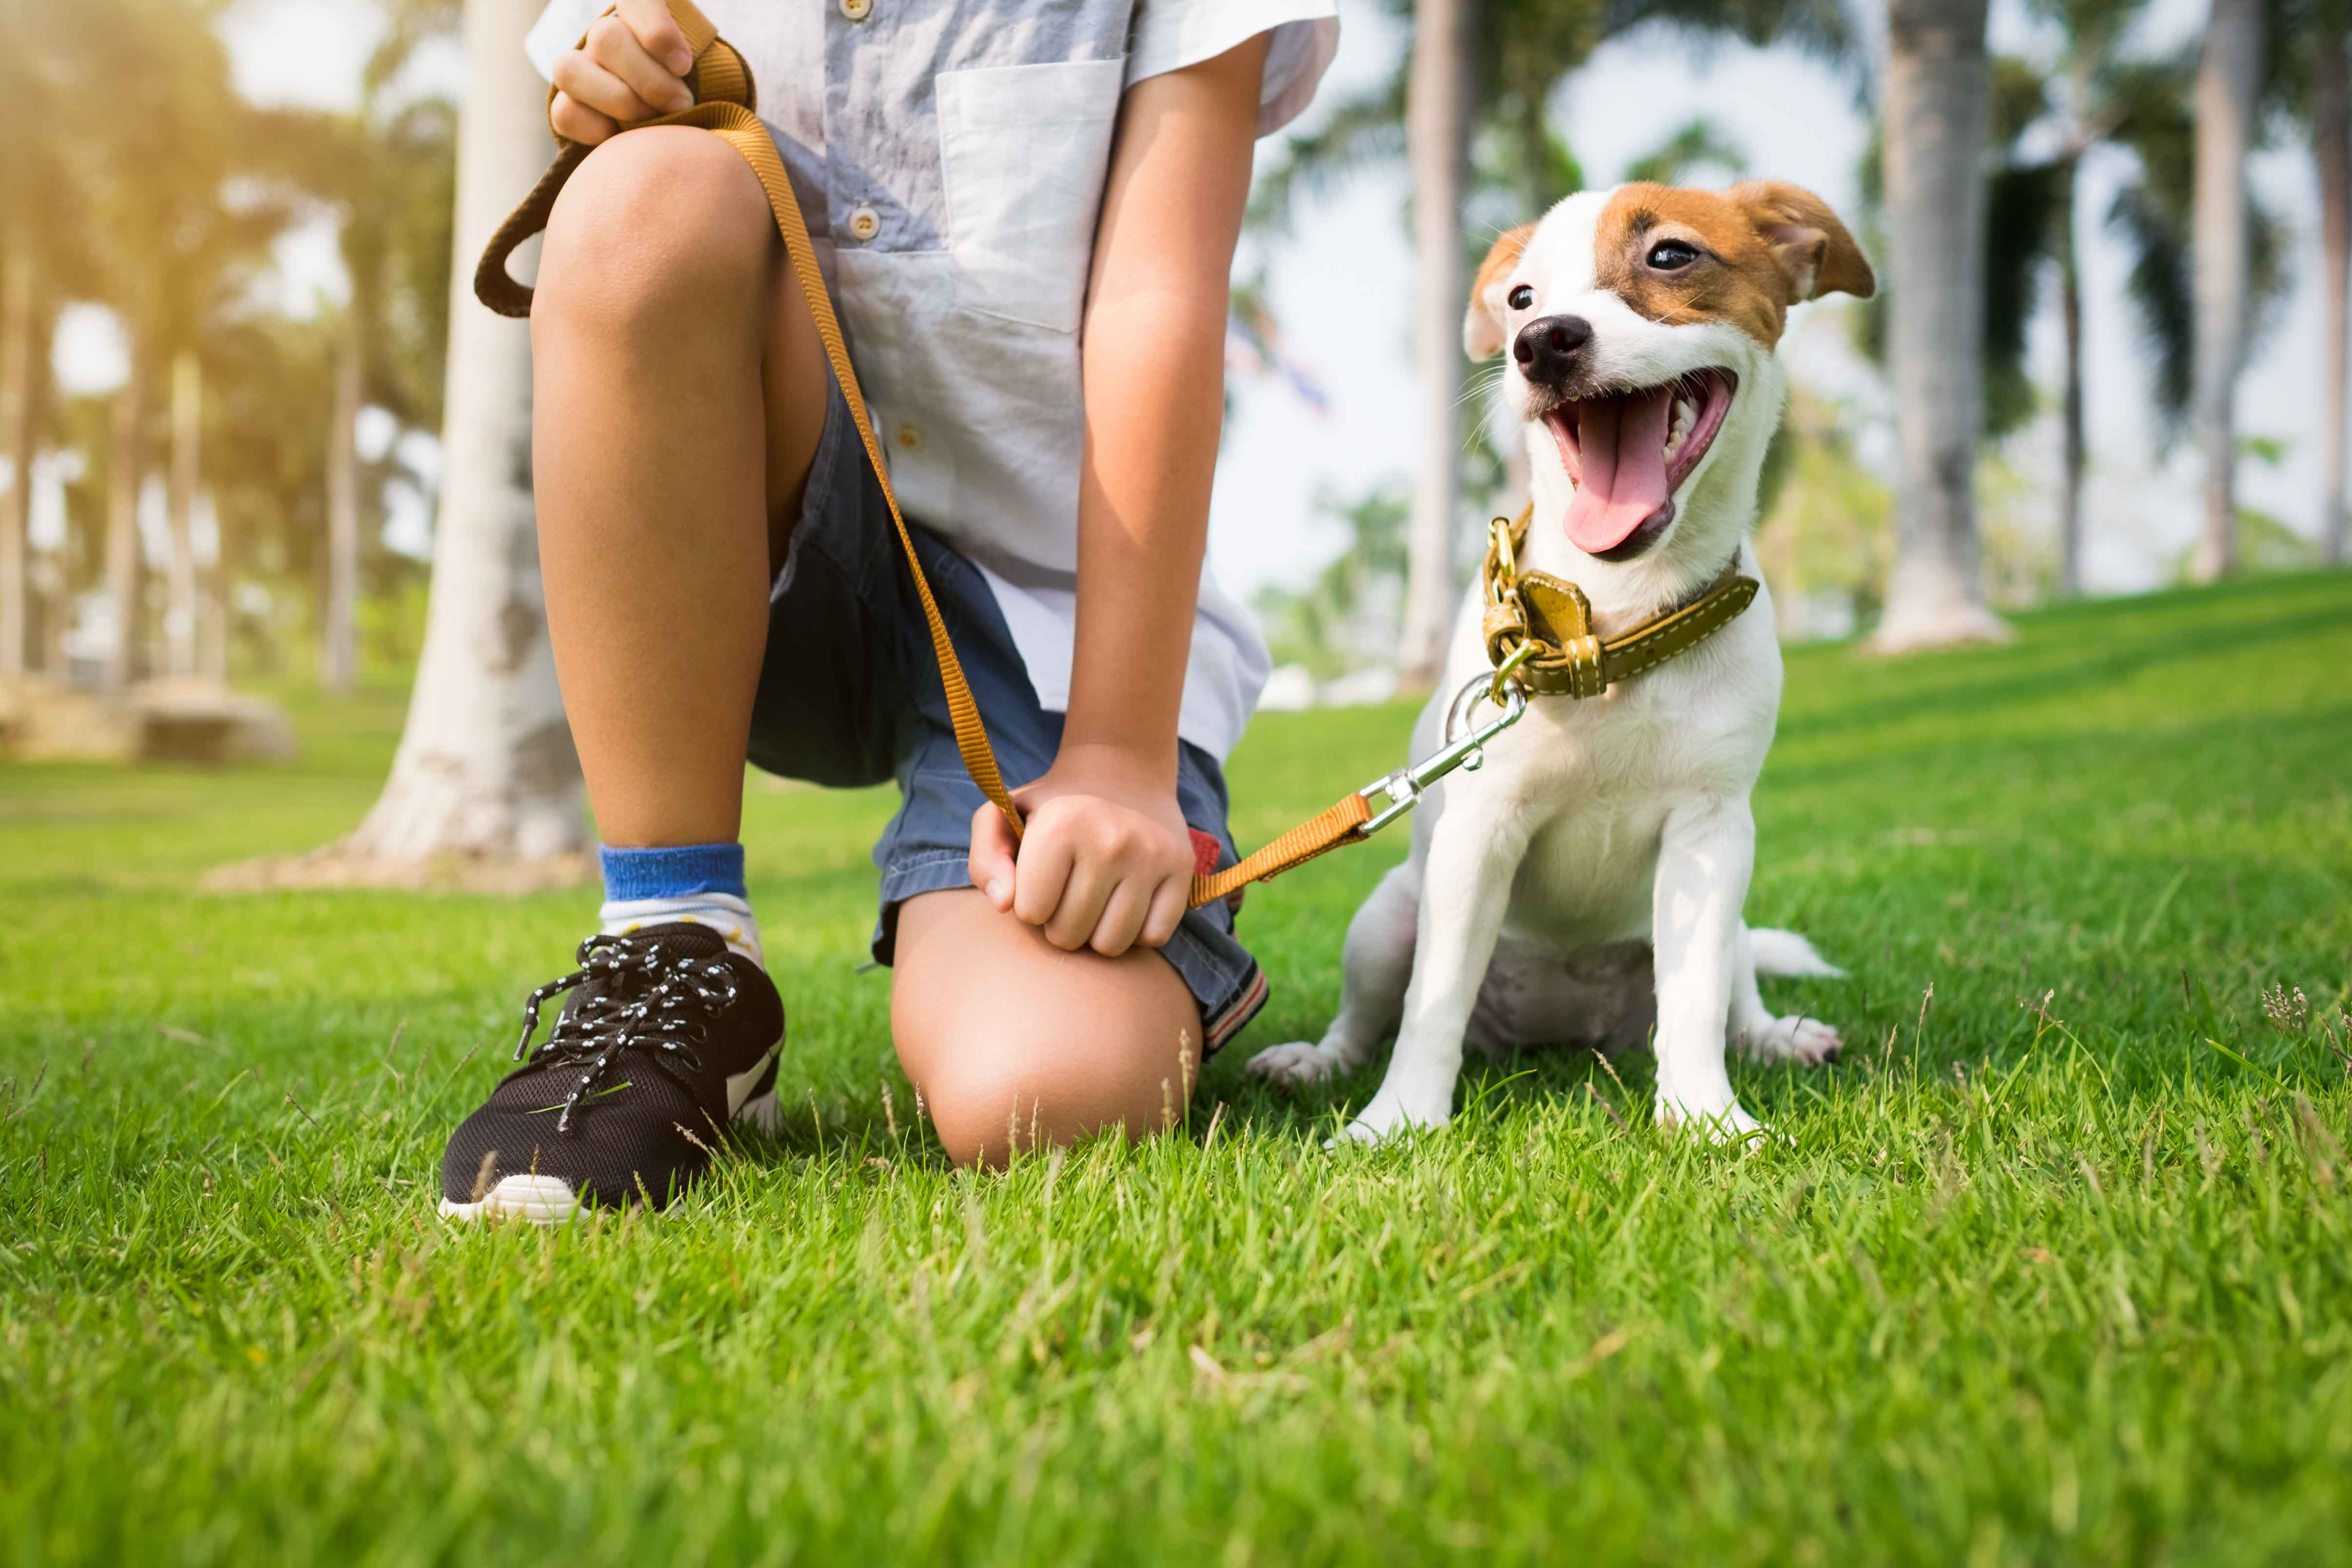 A young boy working a job as a dog walker in the summer